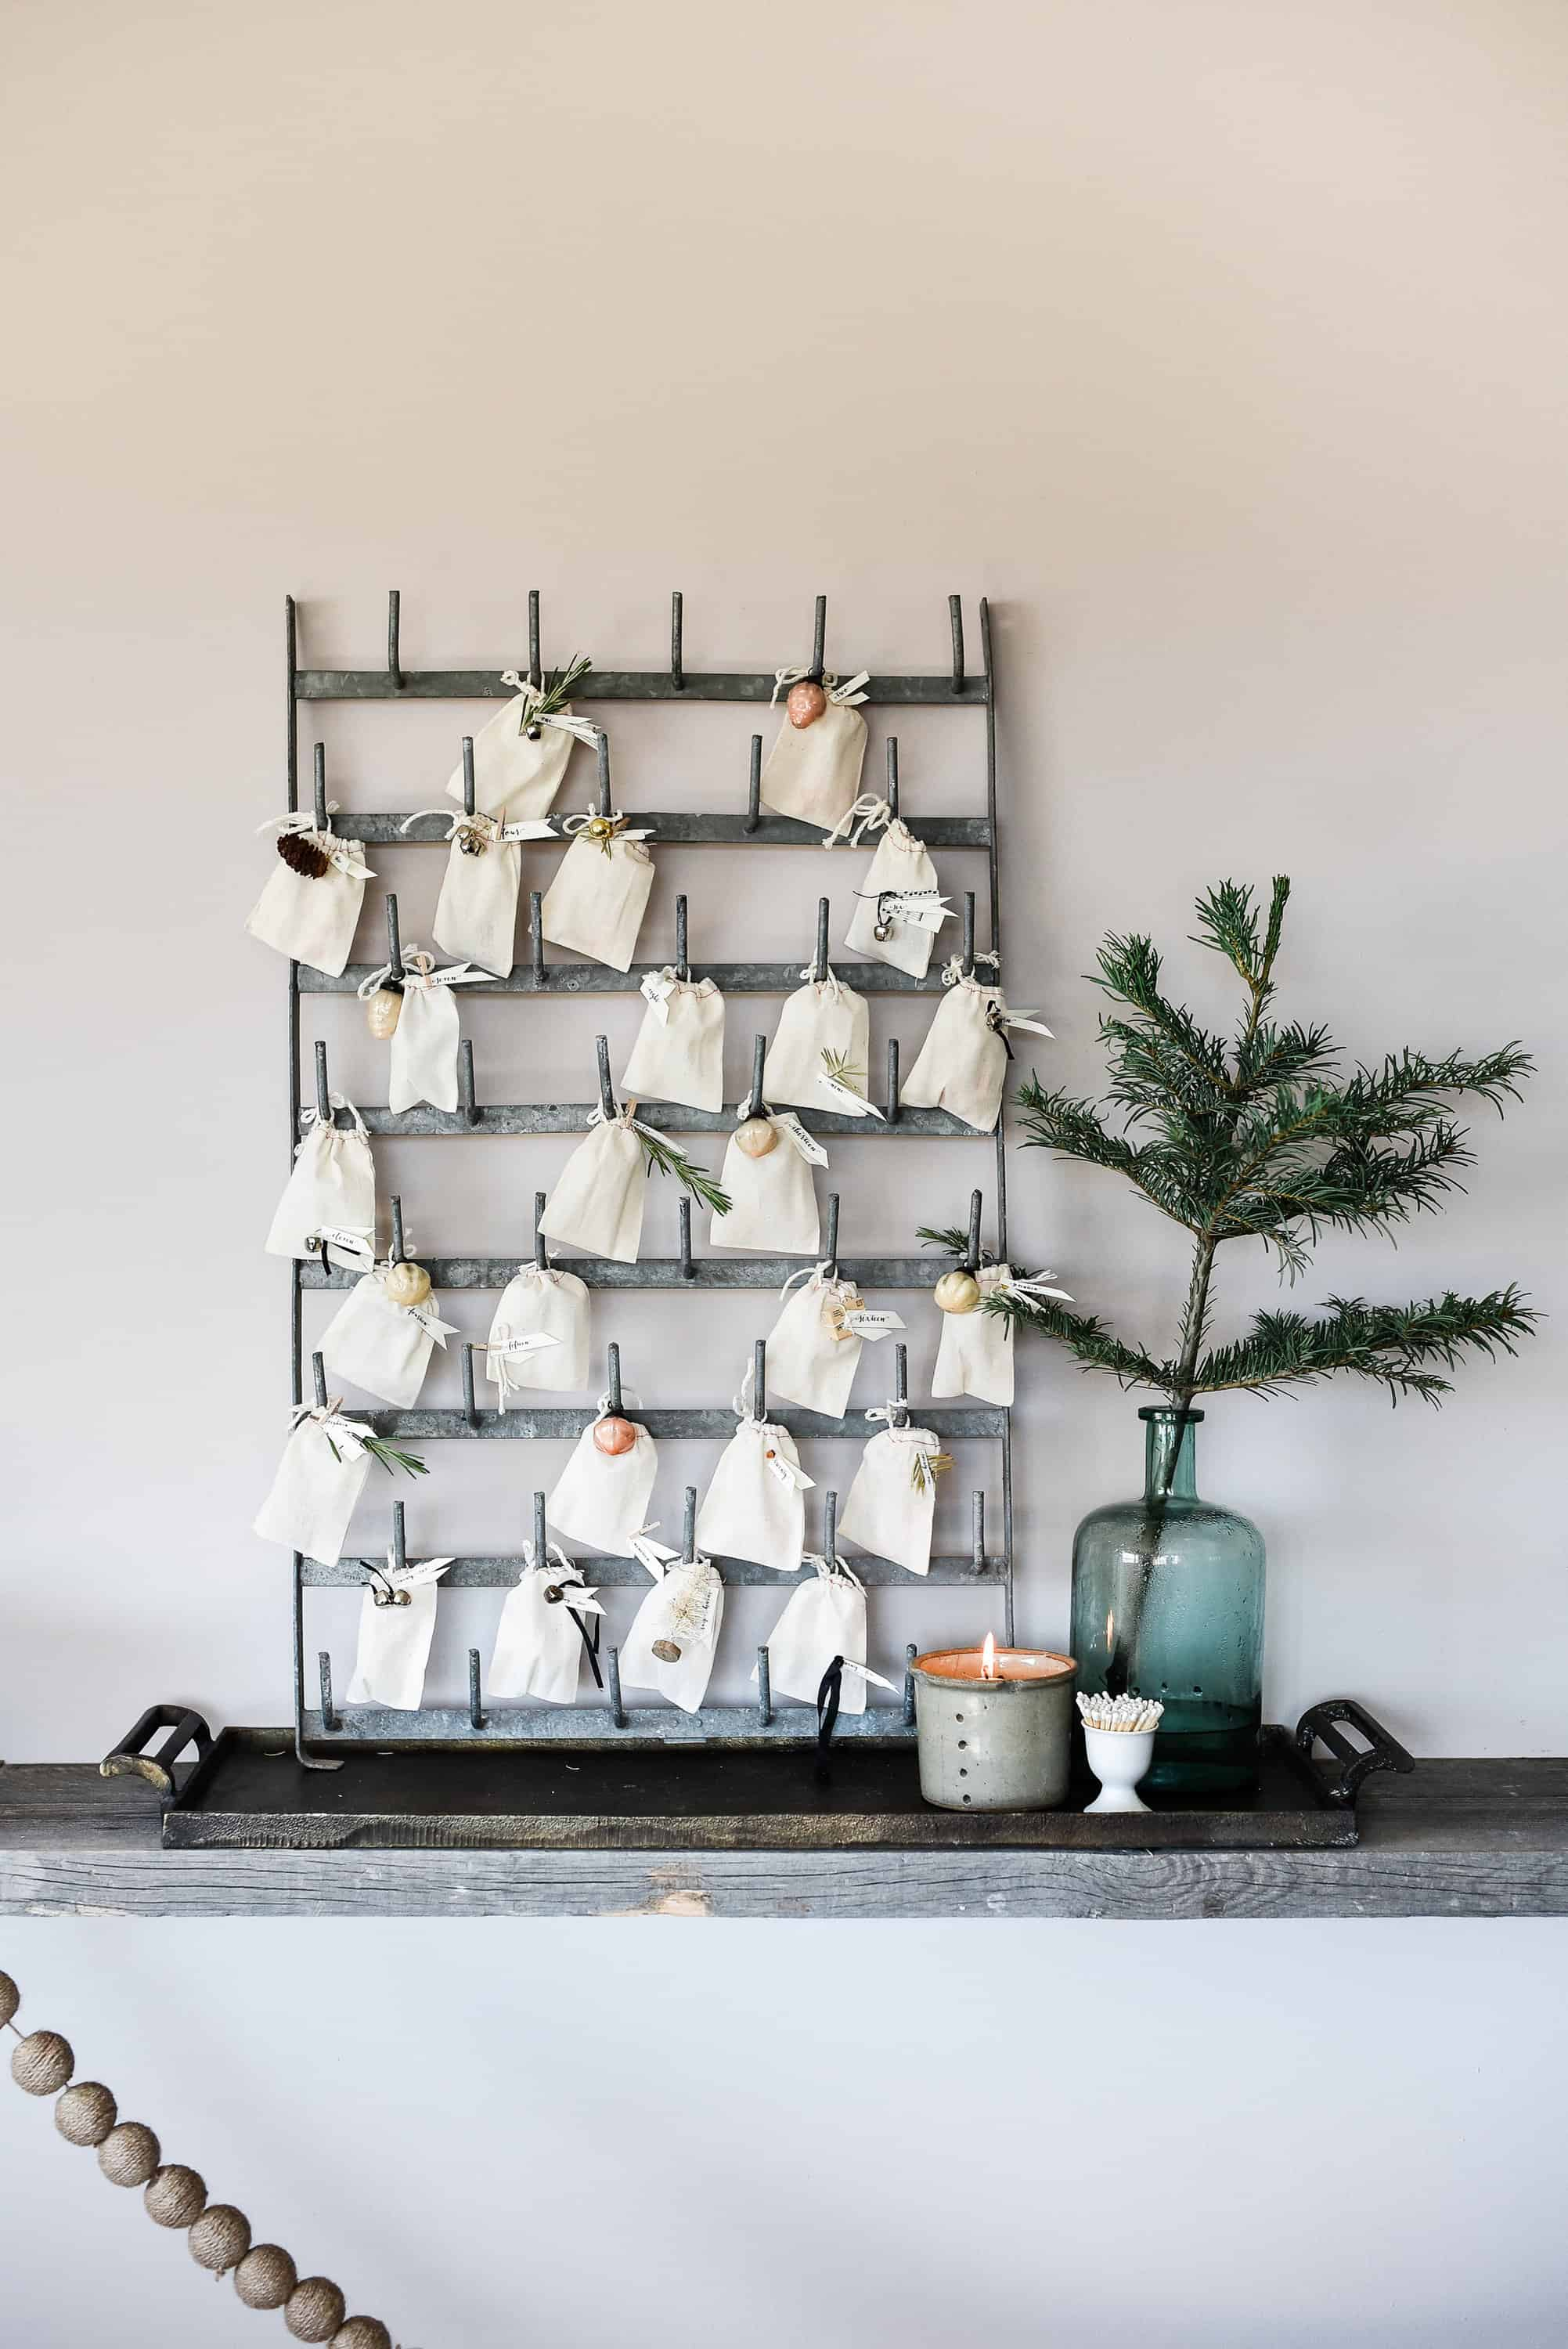 Create your own farmhouse Christmas with simple table ideas for decorating your dining room this holiday season!